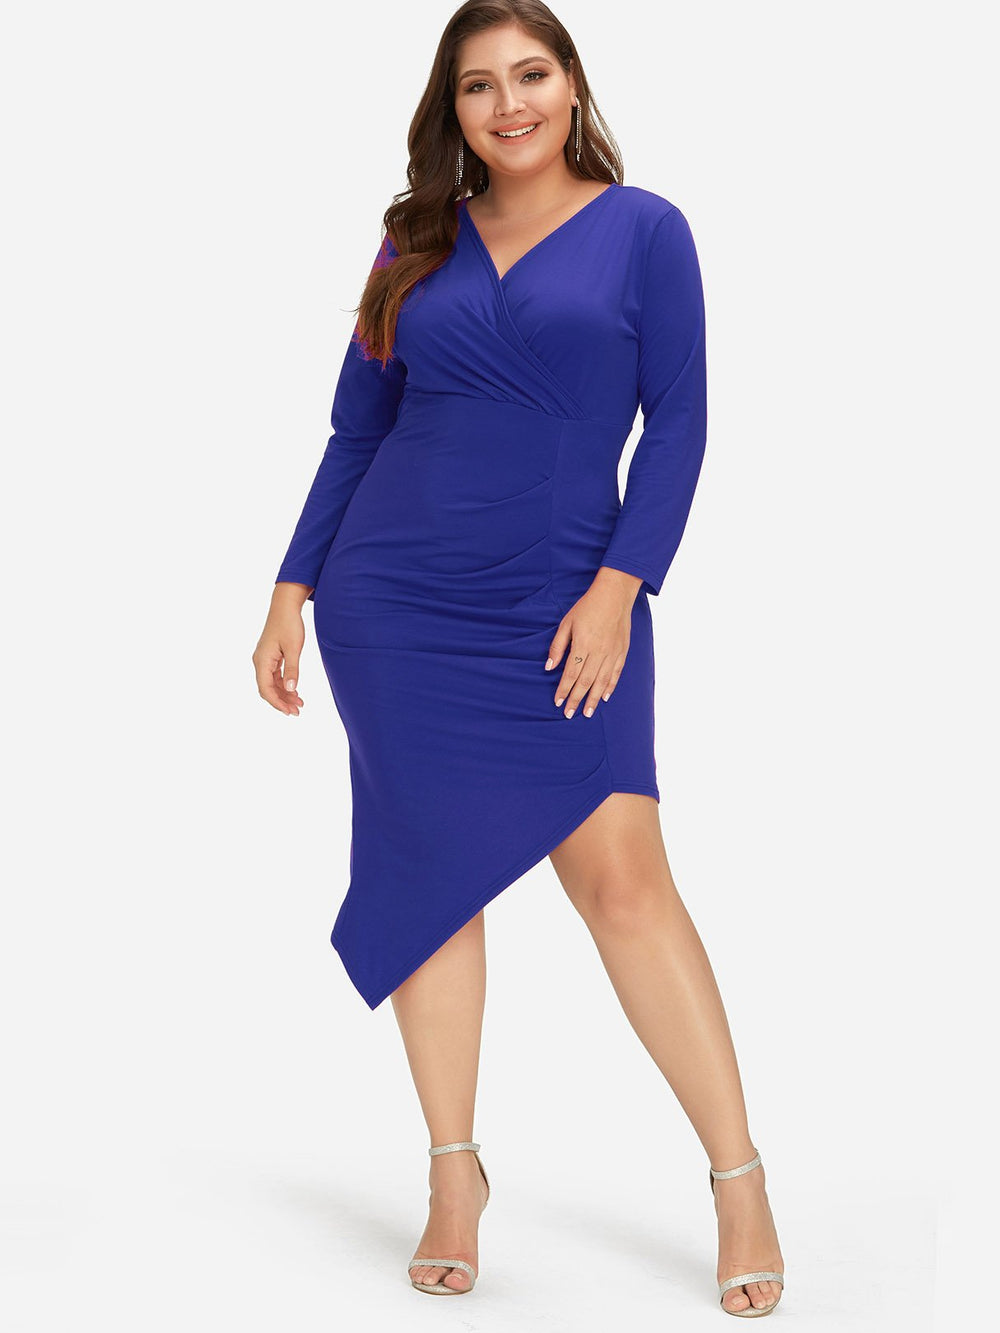 Plus Size Ball Dresses